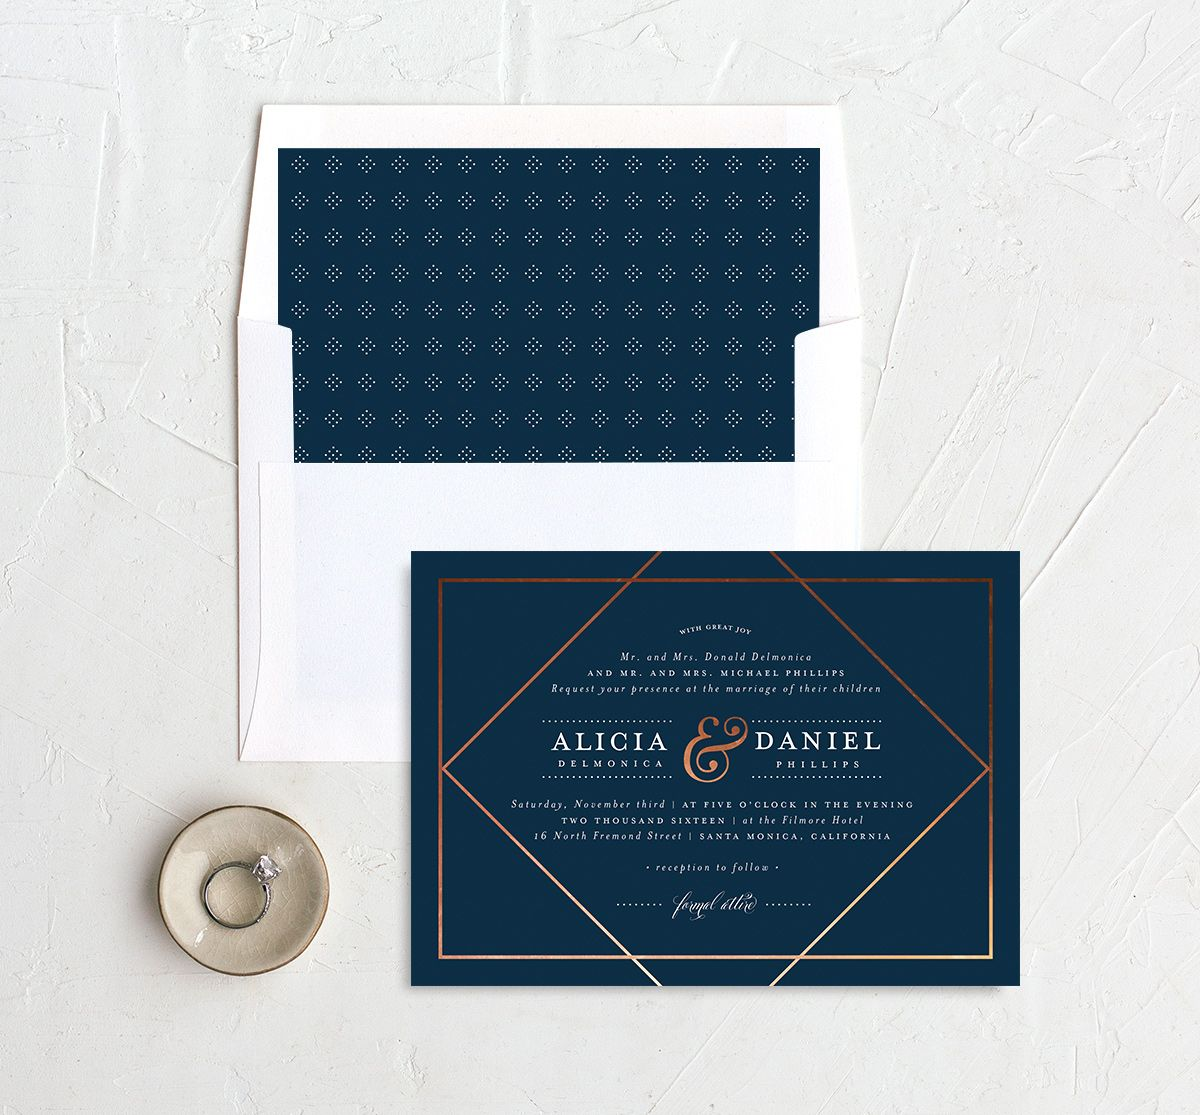 Formal Ampersand invites with liner in navy